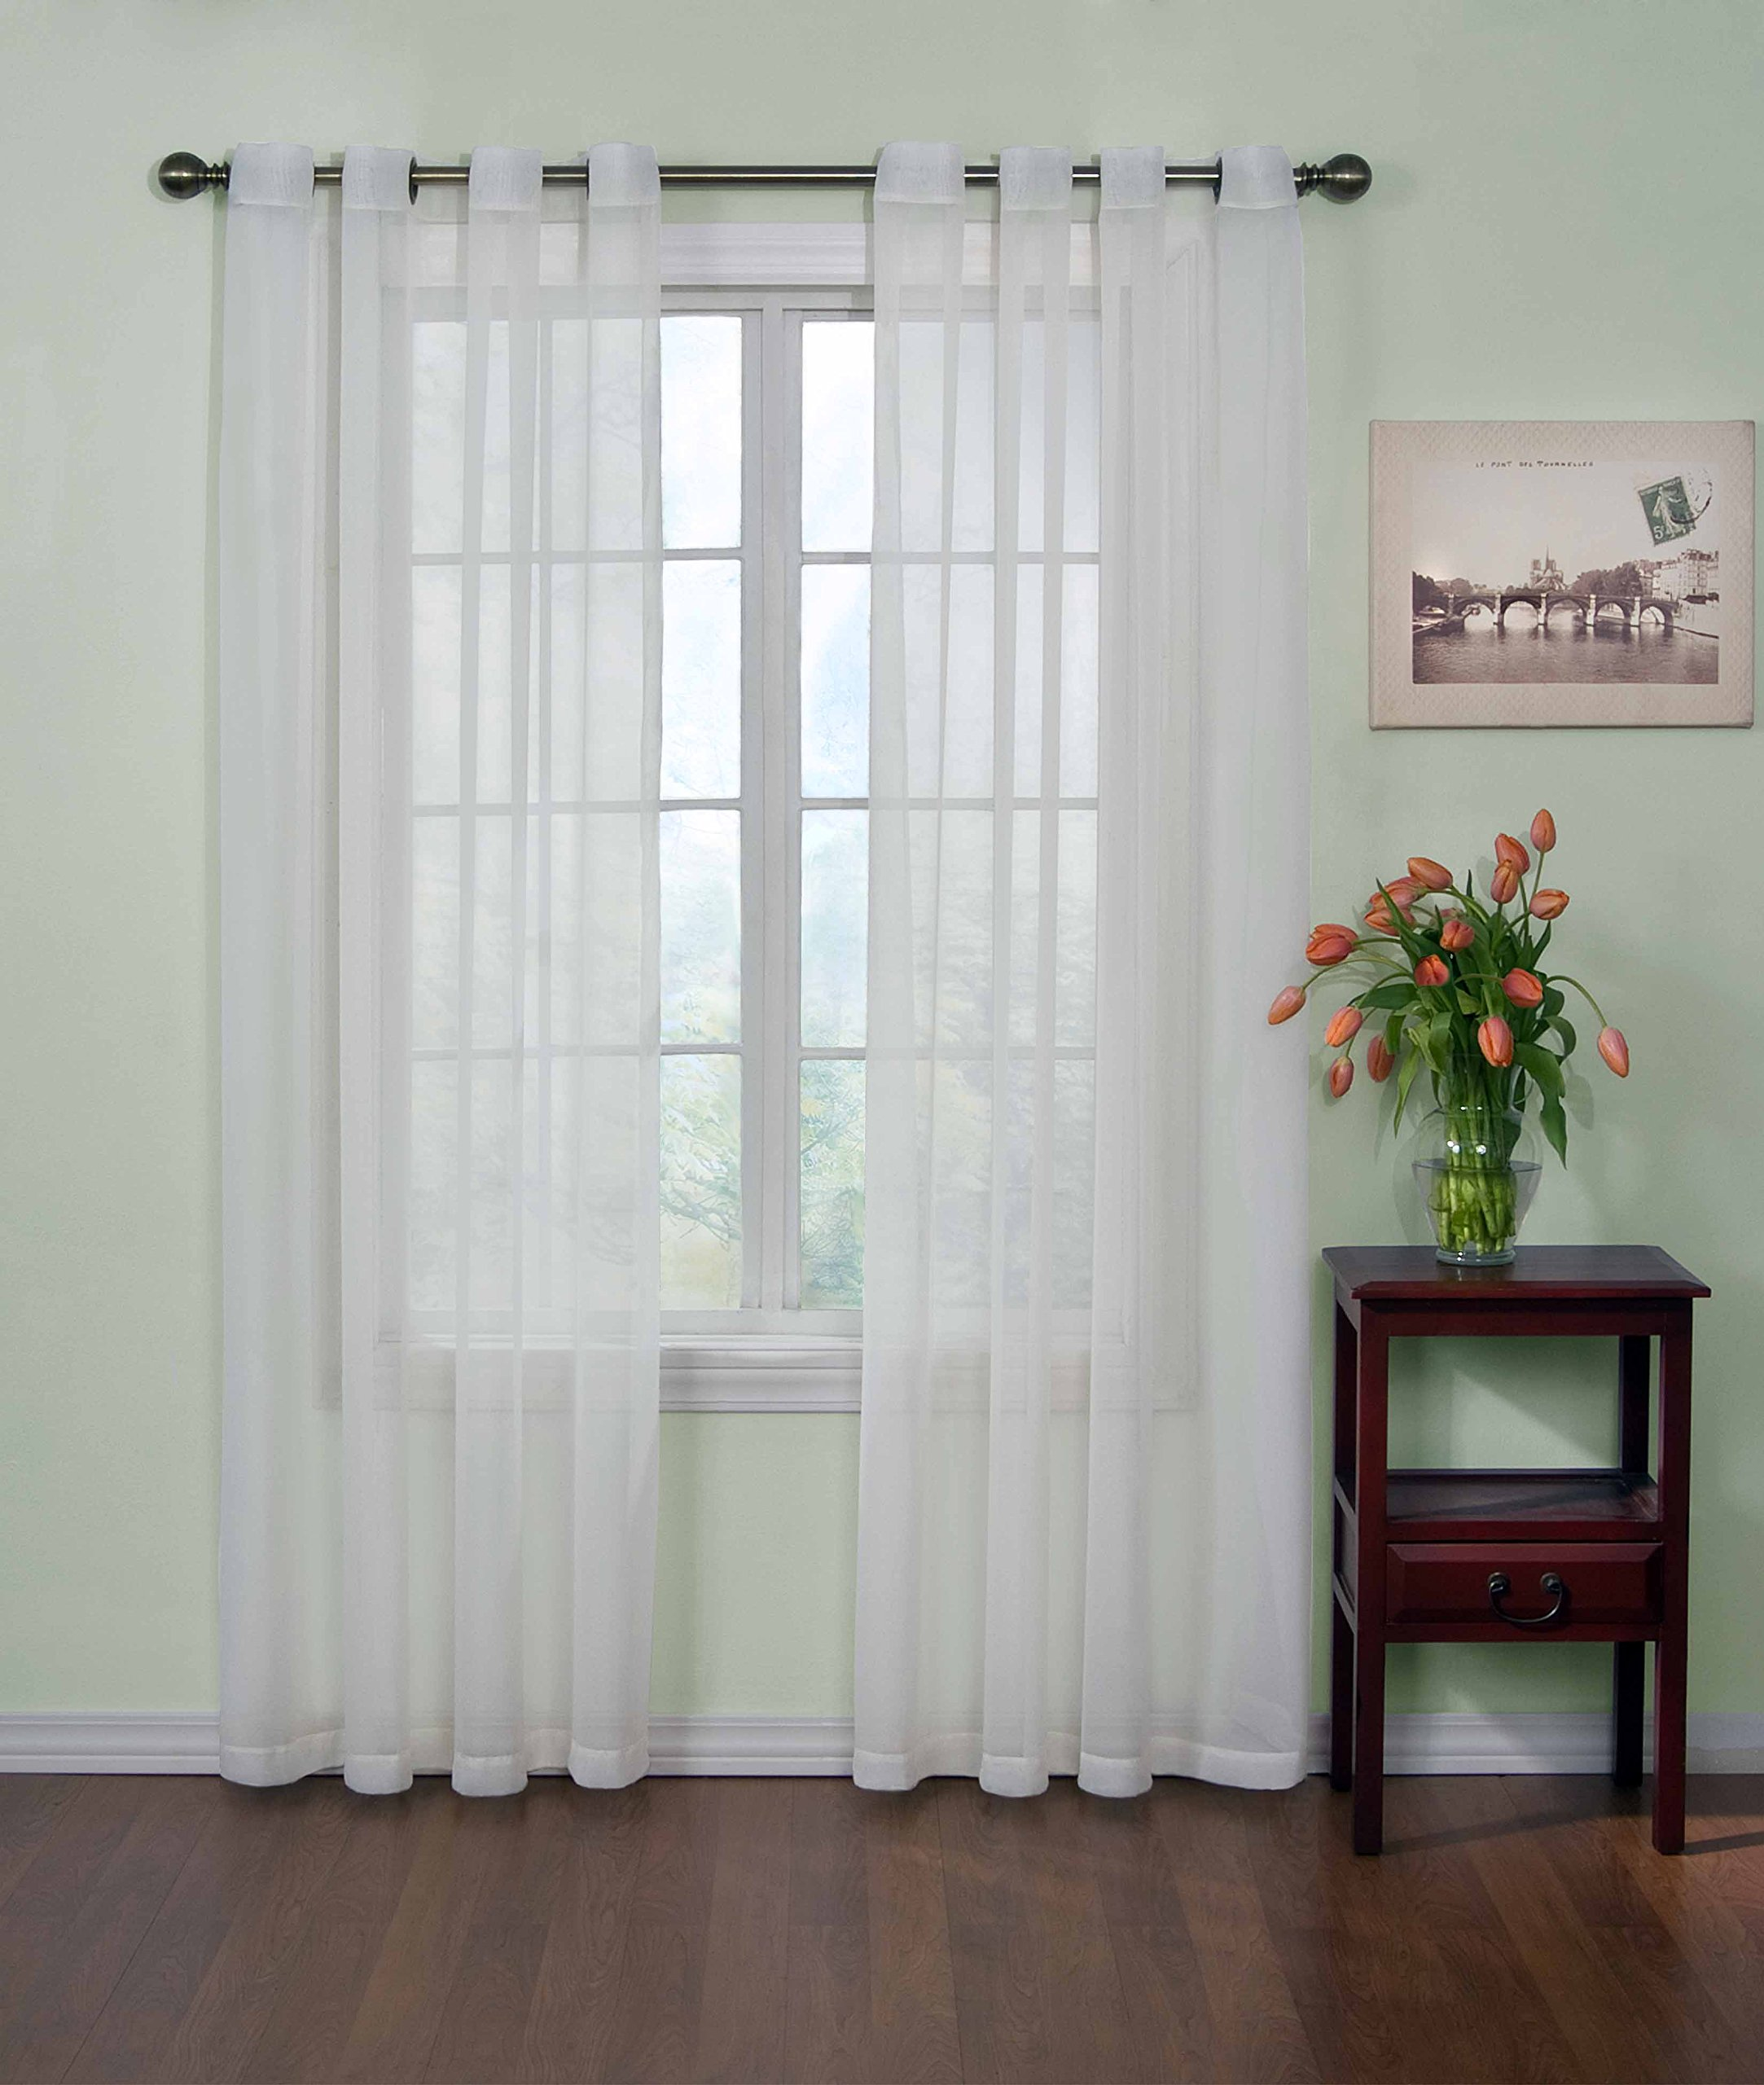 CURTAIN FRESH Sheer Curtains for Bedroom - Arm and Hammer 59'' x 84'' Light Filtering Single Panel Grommet Top Window Treatment for Living Room, White by Curtain Fresh